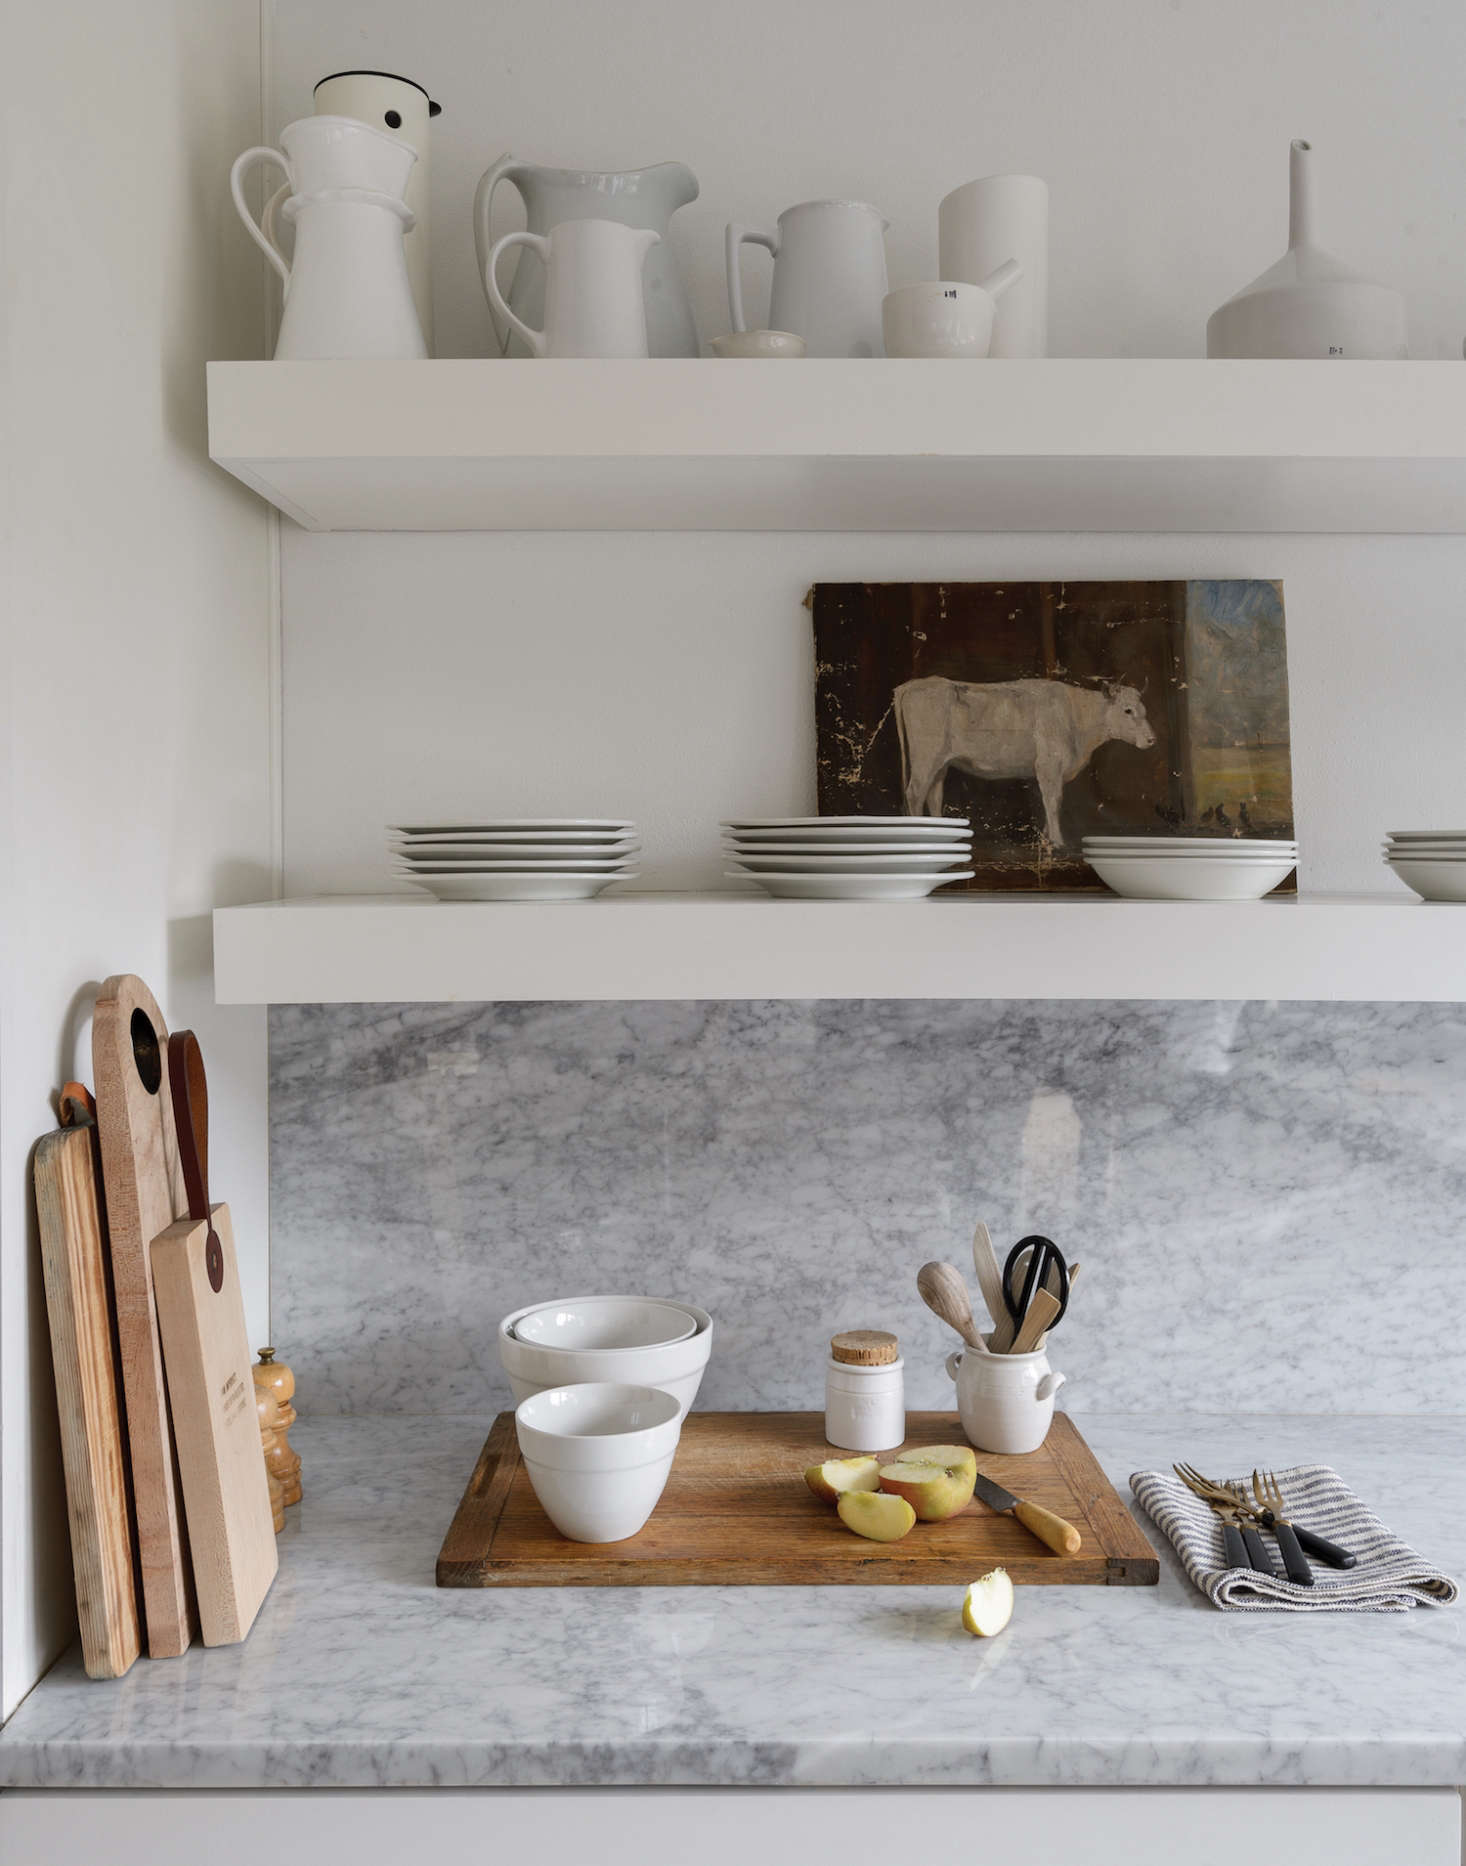 The marble countertop and backsplash are Carrara marble. The open shelves are stocked with a collection of white ceramics and vintage ironstone.Photograph by Matthew Williams fromBefore & After: Remodelista Contributing Editor Izabella Simmons Shares Her Scandi-Inspired Remodel.